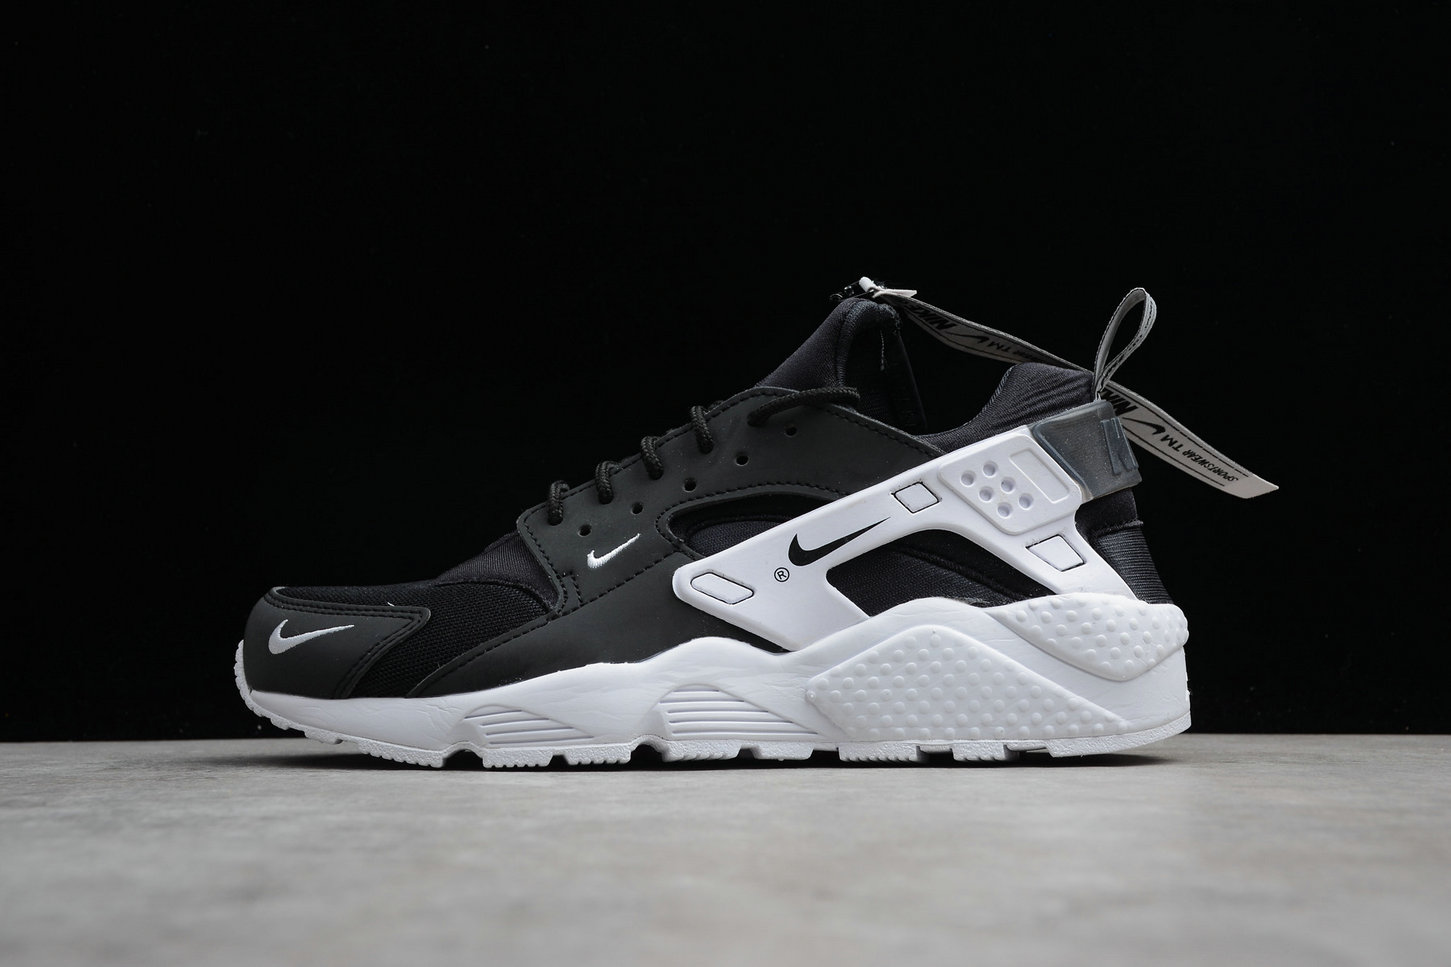 Cheap Nike Air Huarache Run ZIP QS BQ6164-001 Black White Noir Blanc